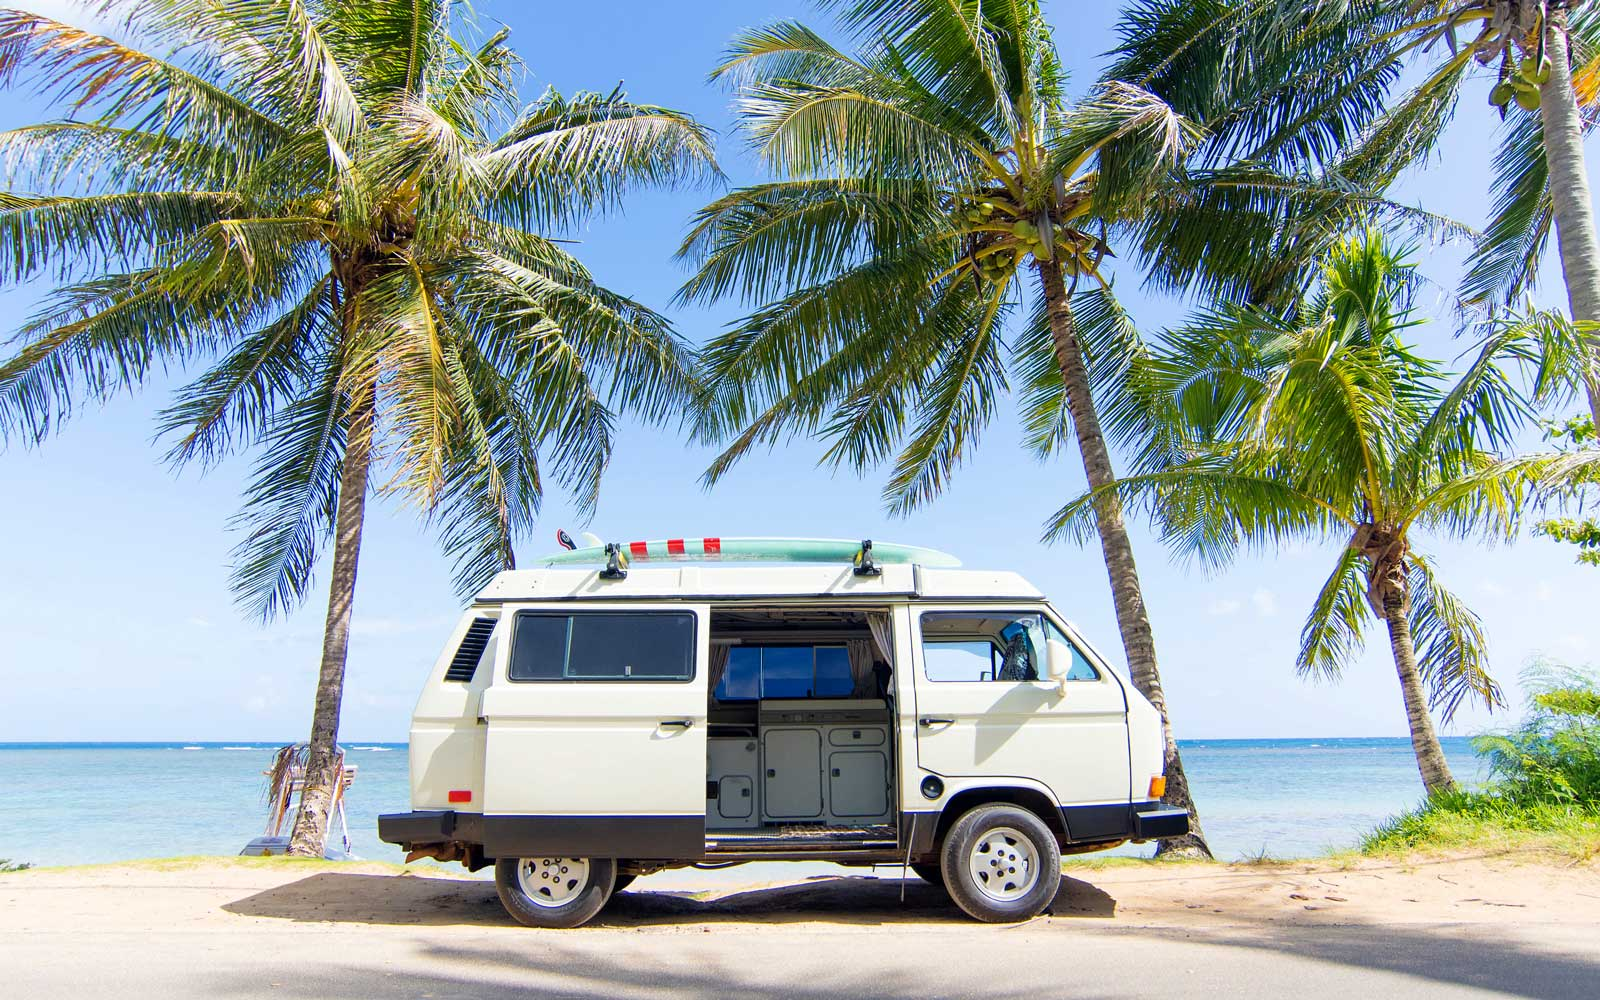 You Can Now Spend the Night on the Beaches of Hawaii in a Retro Volkswagen Campervan